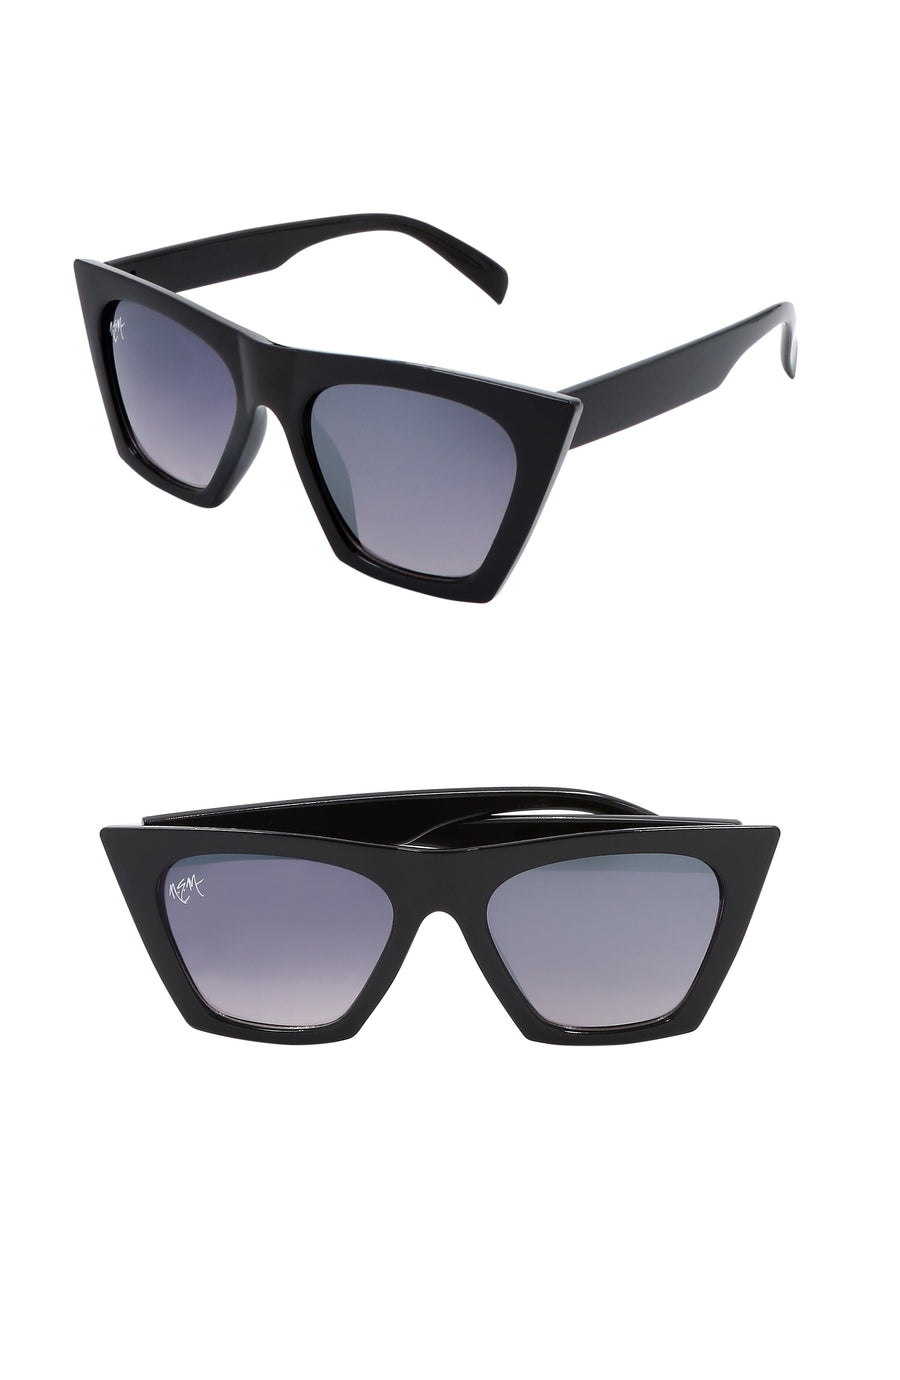 Posh Wayfarer Sunnies-Black - NEM Fashion Store